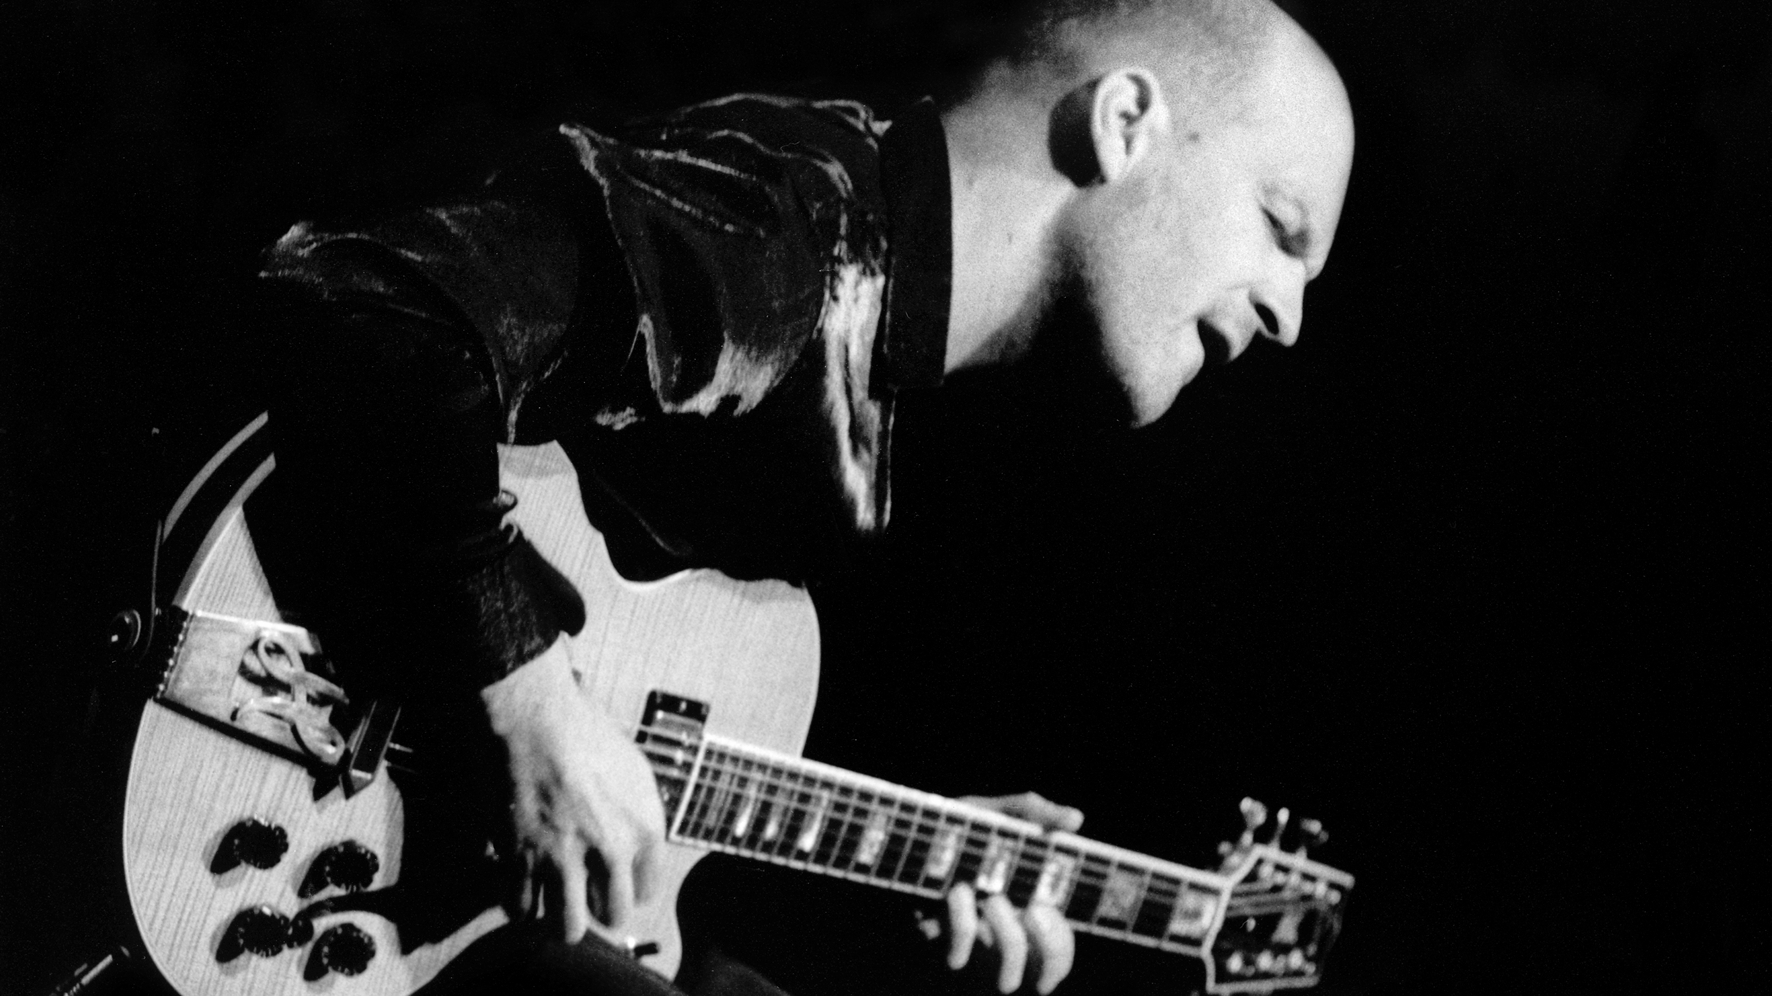 'It's Better To Be An Outsider': Wolfgang Muthspiel's Global Guitar Odyssey